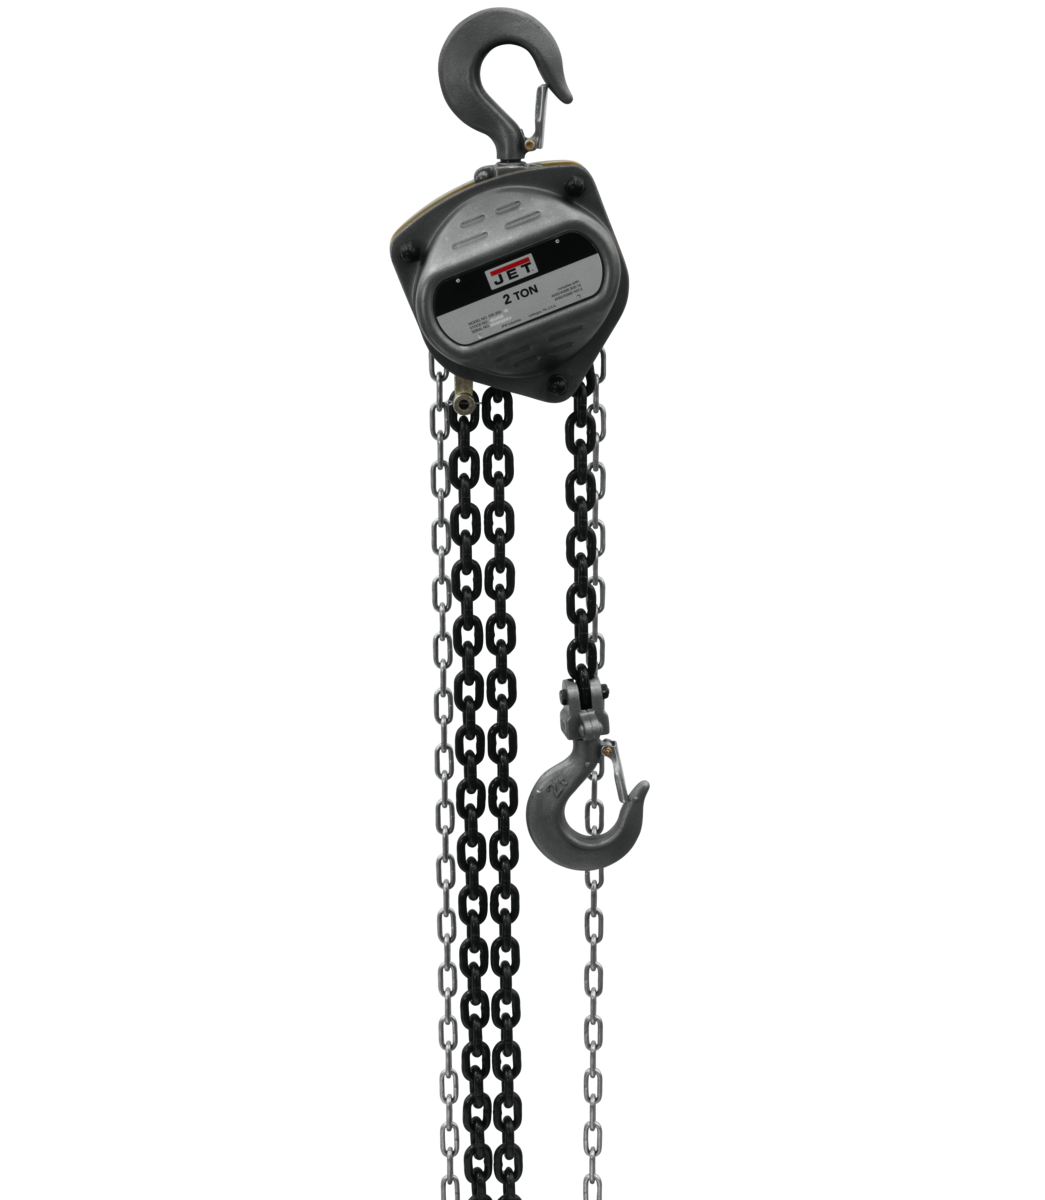 S90-200-20, 2-Ton Hand Chain Hoist With 20' Lift